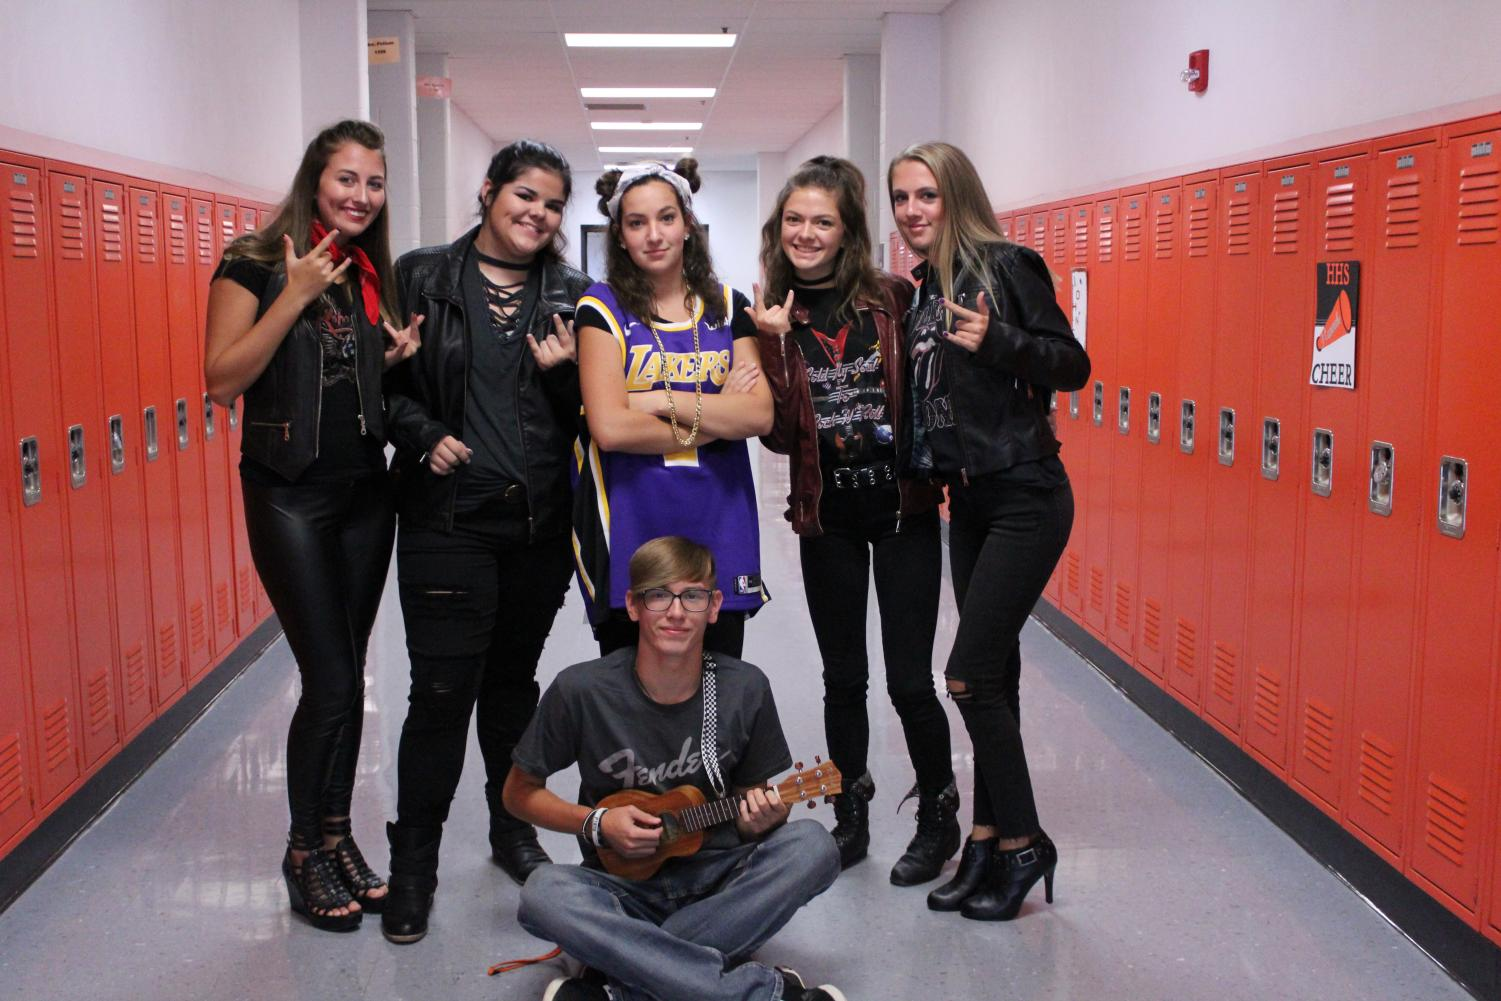 Sophomores+pose+together%2C+ready+to+rock+out.+